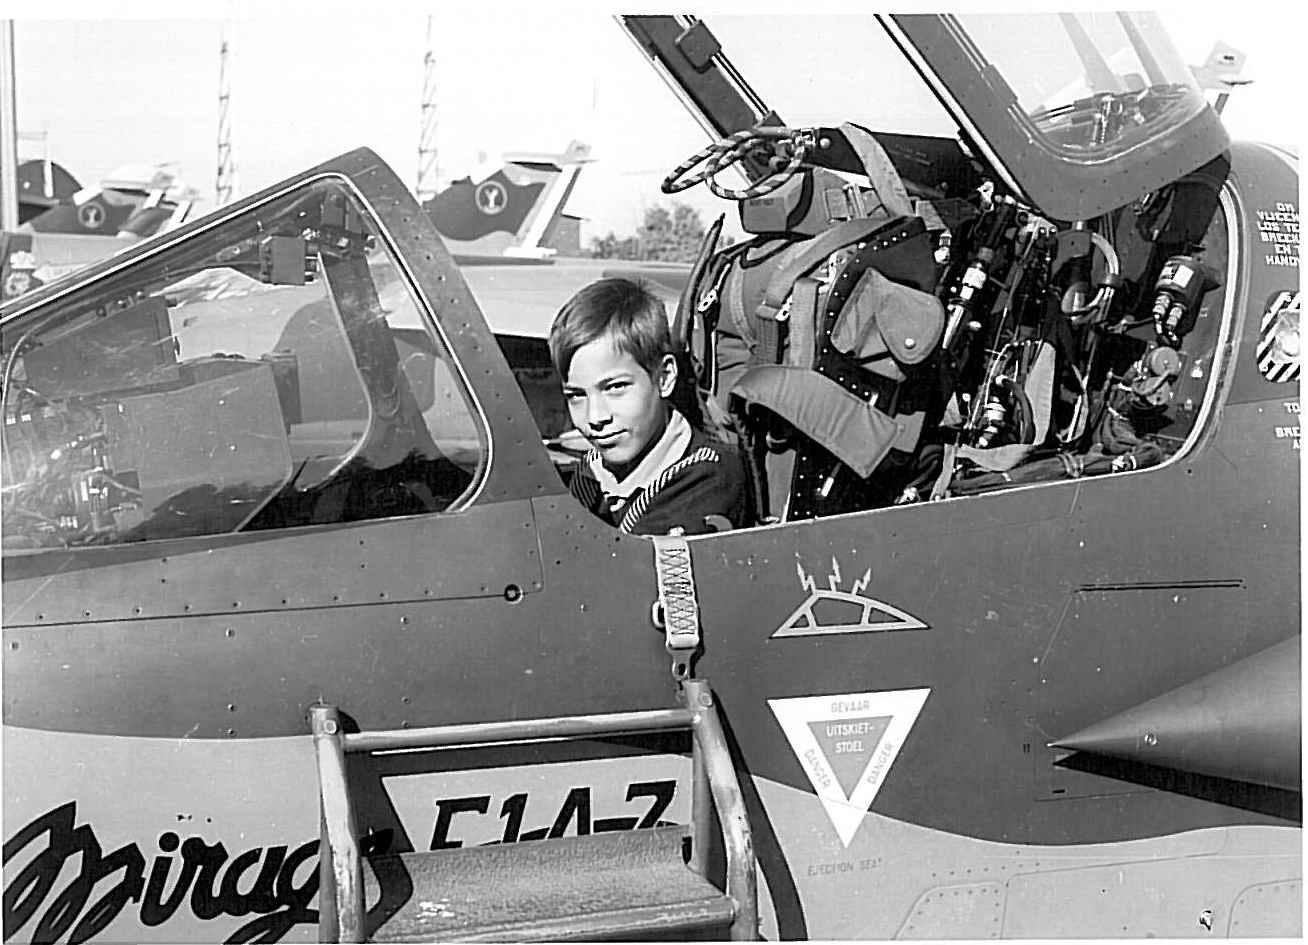 Chris the Fighter Pilot 1969